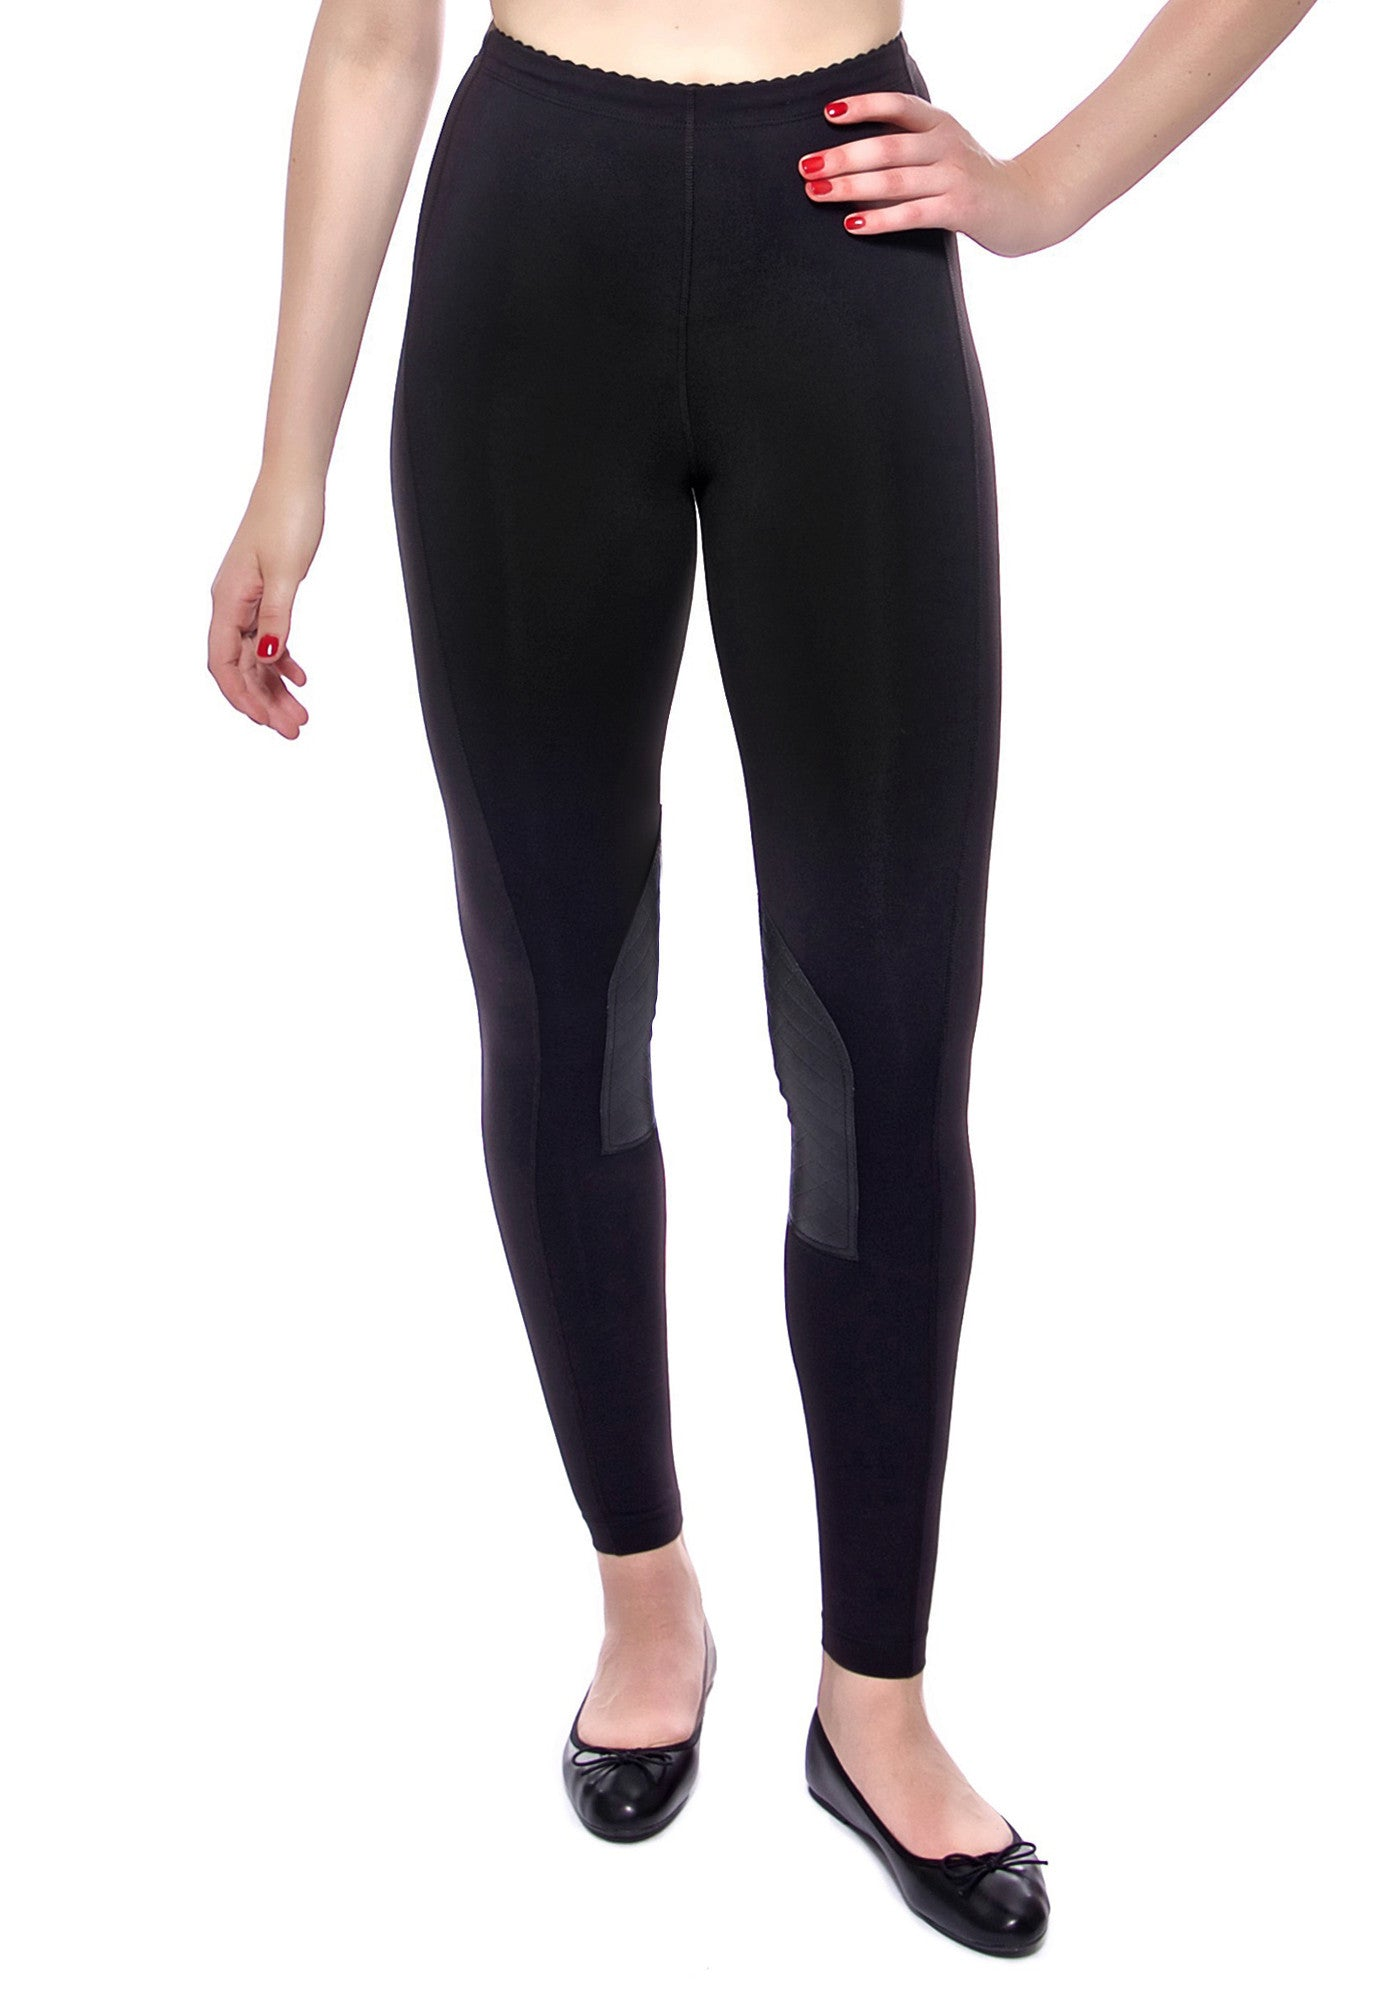 High waisted legging with leather patches at inside knee made from premium activewear fabric that wicks moisture away from the body to keep you comfortable all day. Hidden drawstring at waistband.